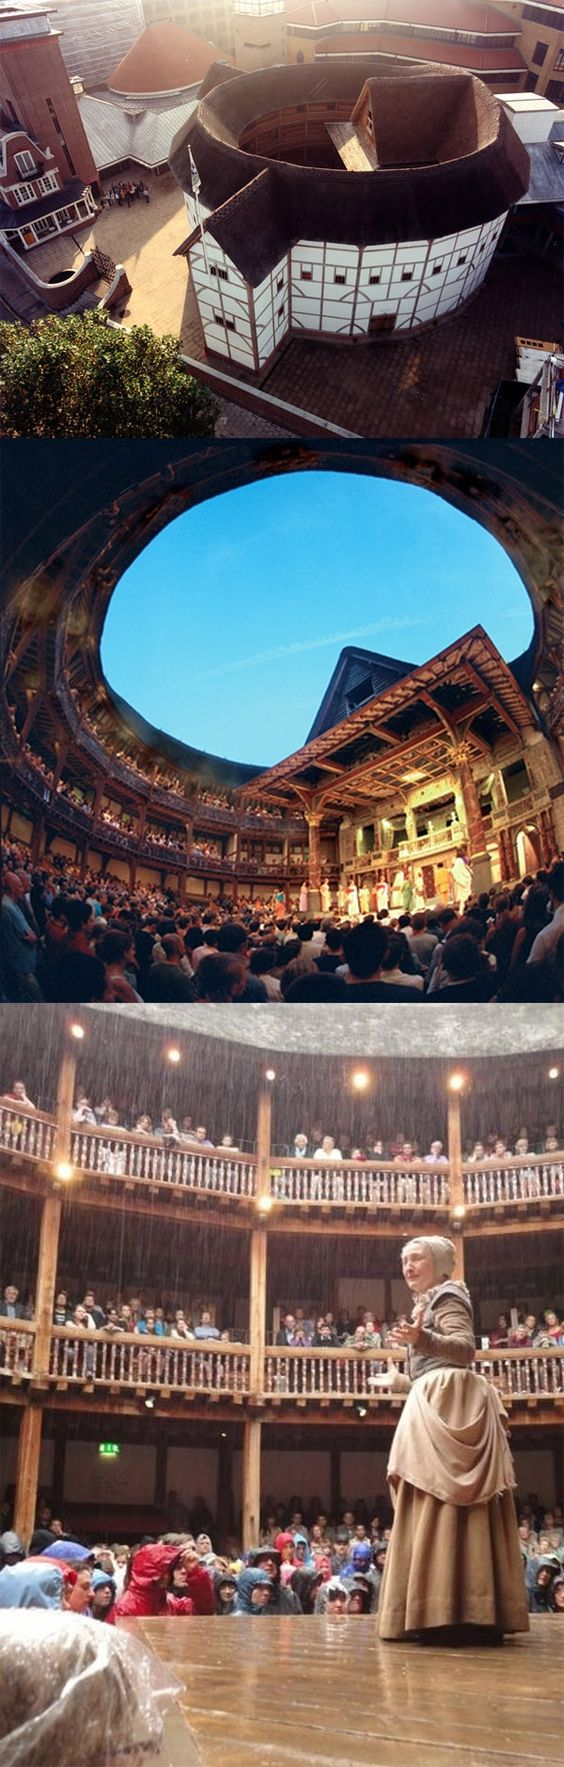 Erected in 1599, The Globe was London's first theater built by and for actors. This is the reconstruction - Shakespeare's Globe.